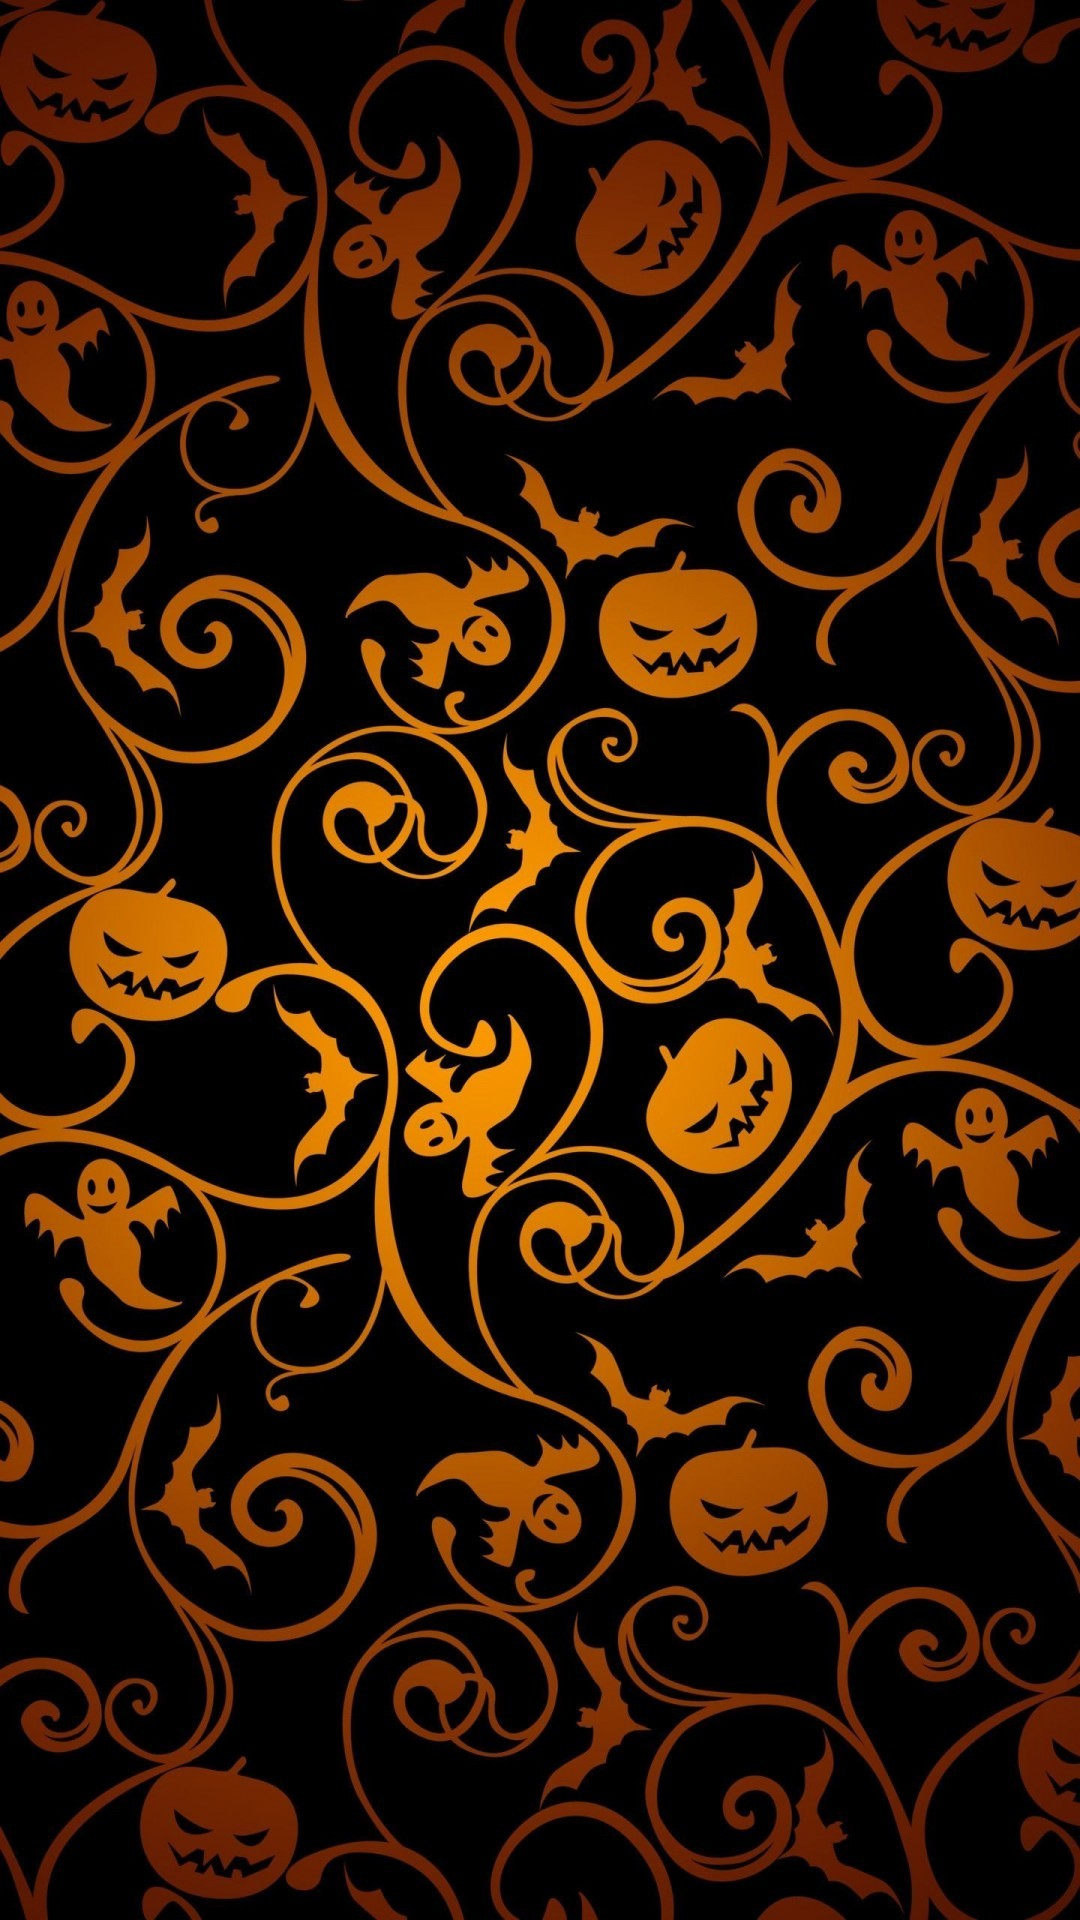 Halloween Background Wallpaper 20161013233433